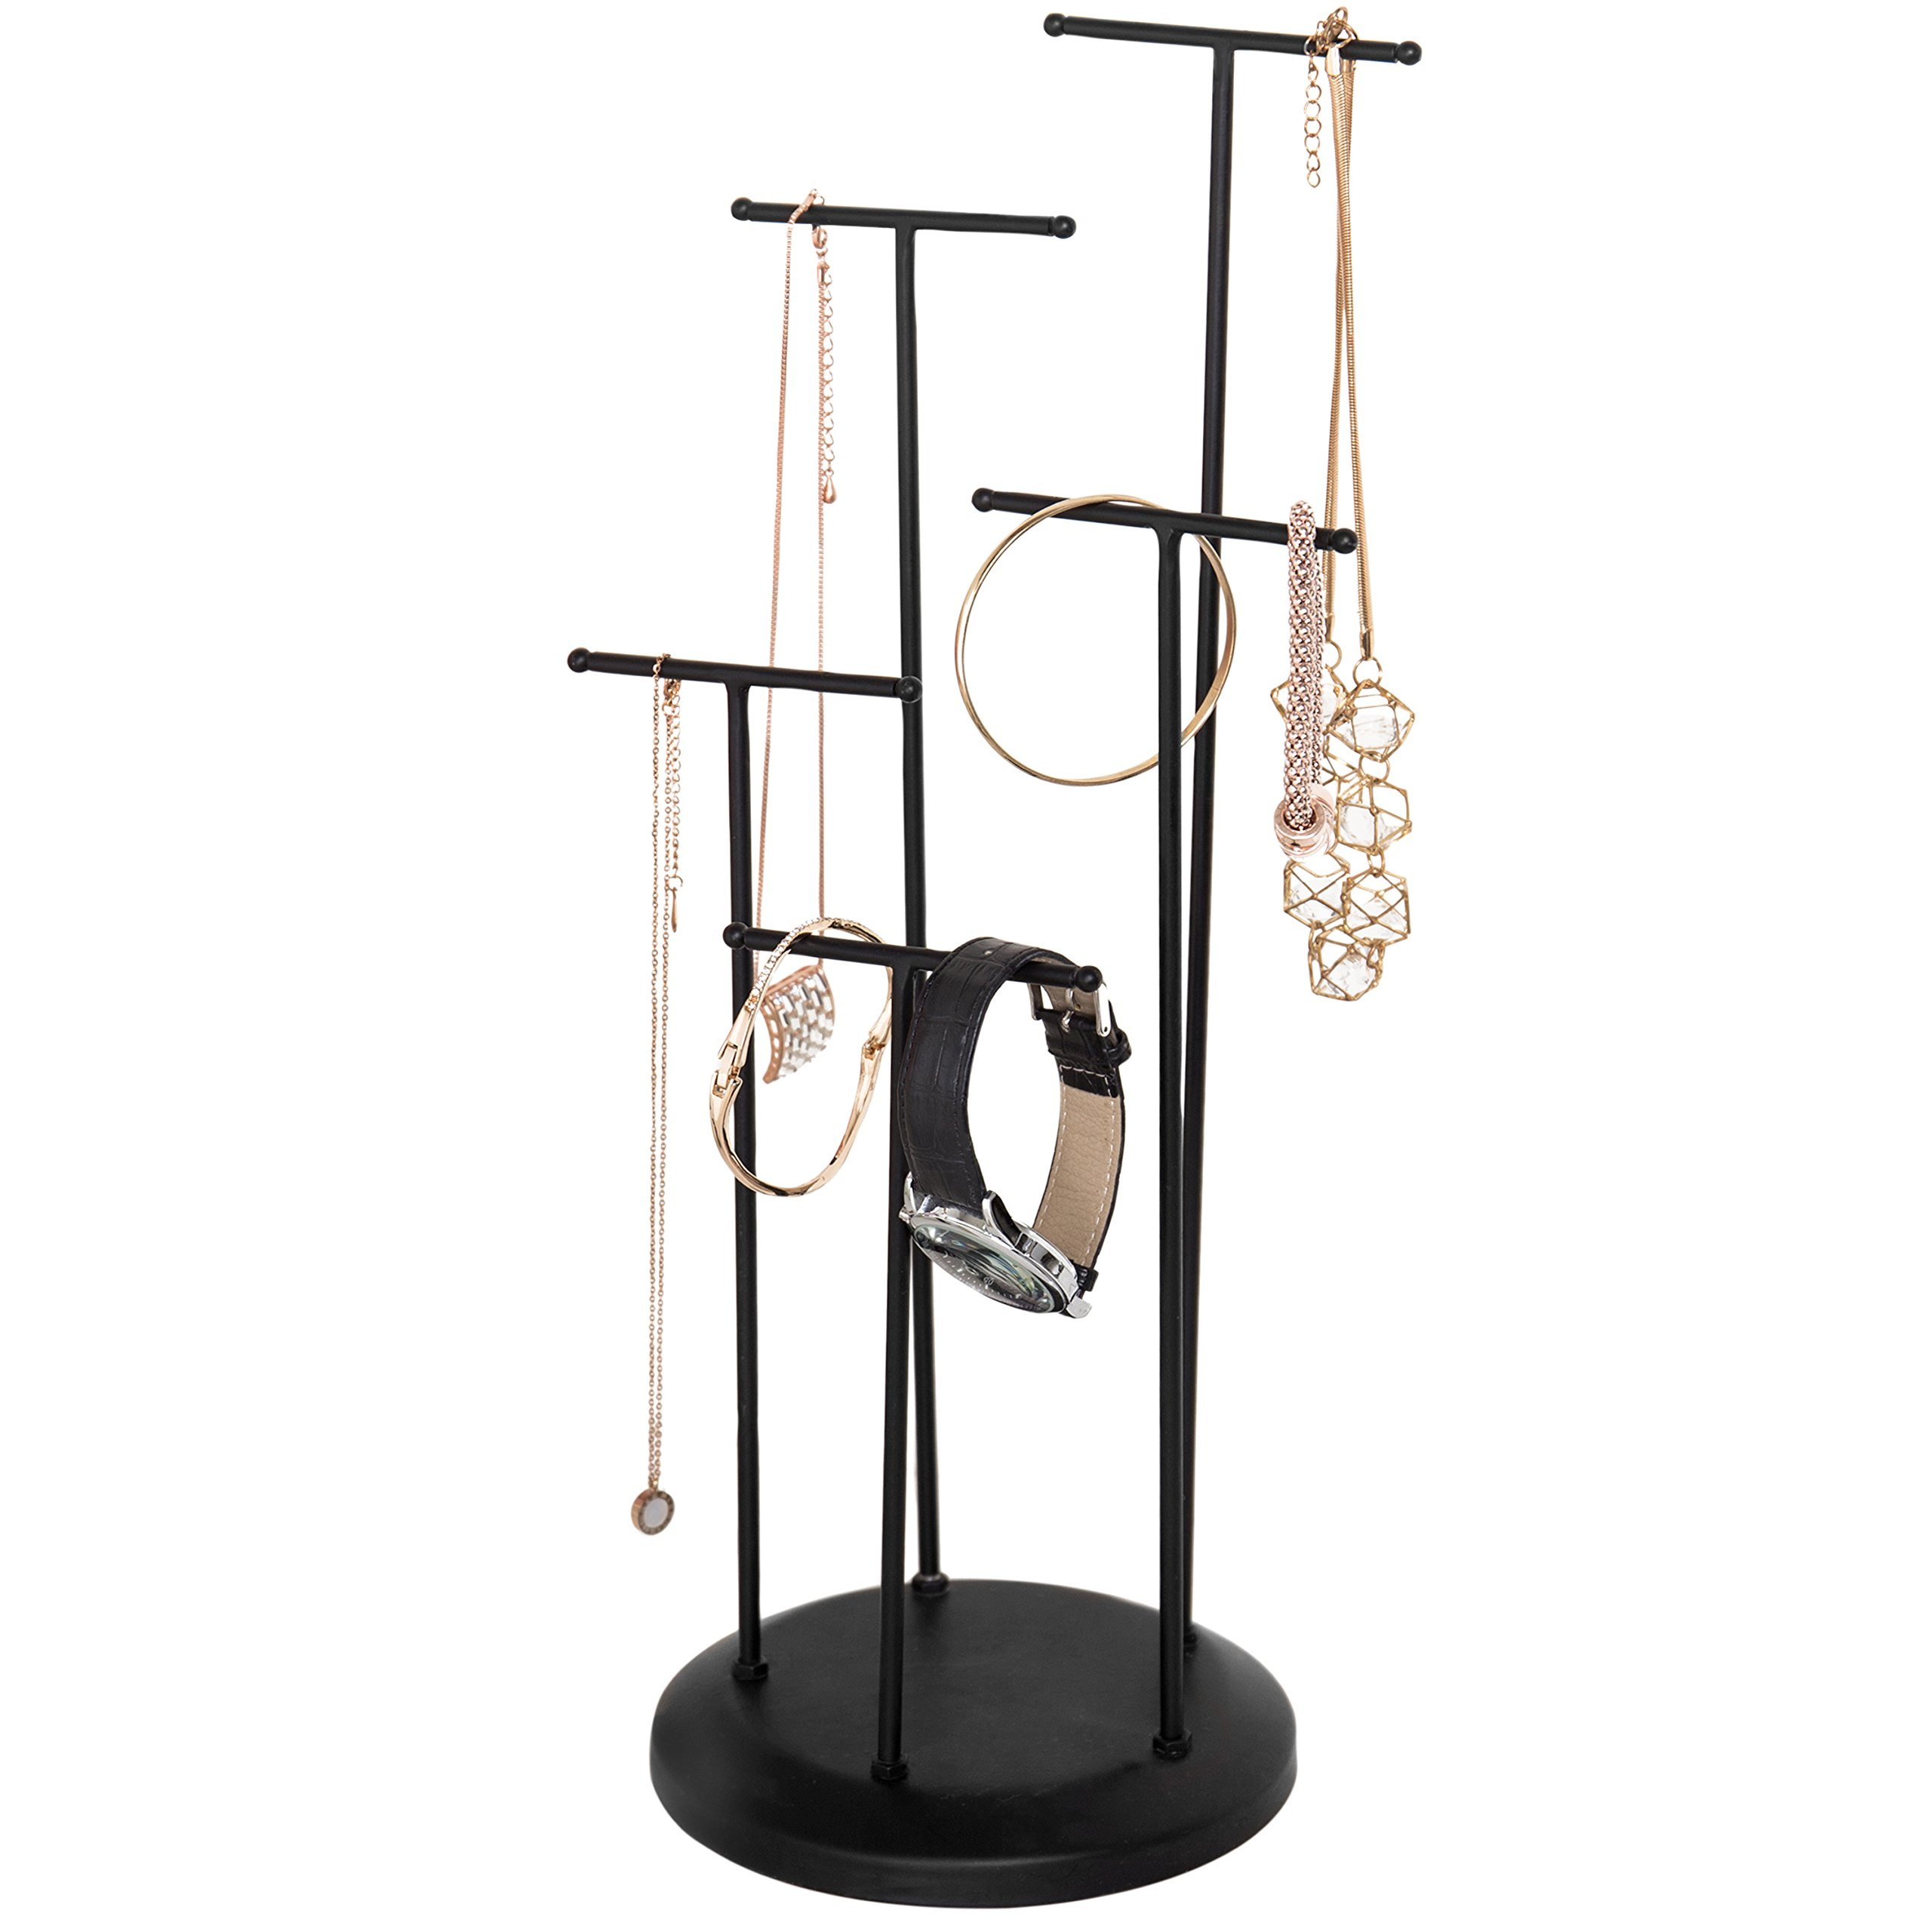 5-Tier Modern Matte Black Metal T-Bar Necklace Jewelry Organizer and Display Stand Rack